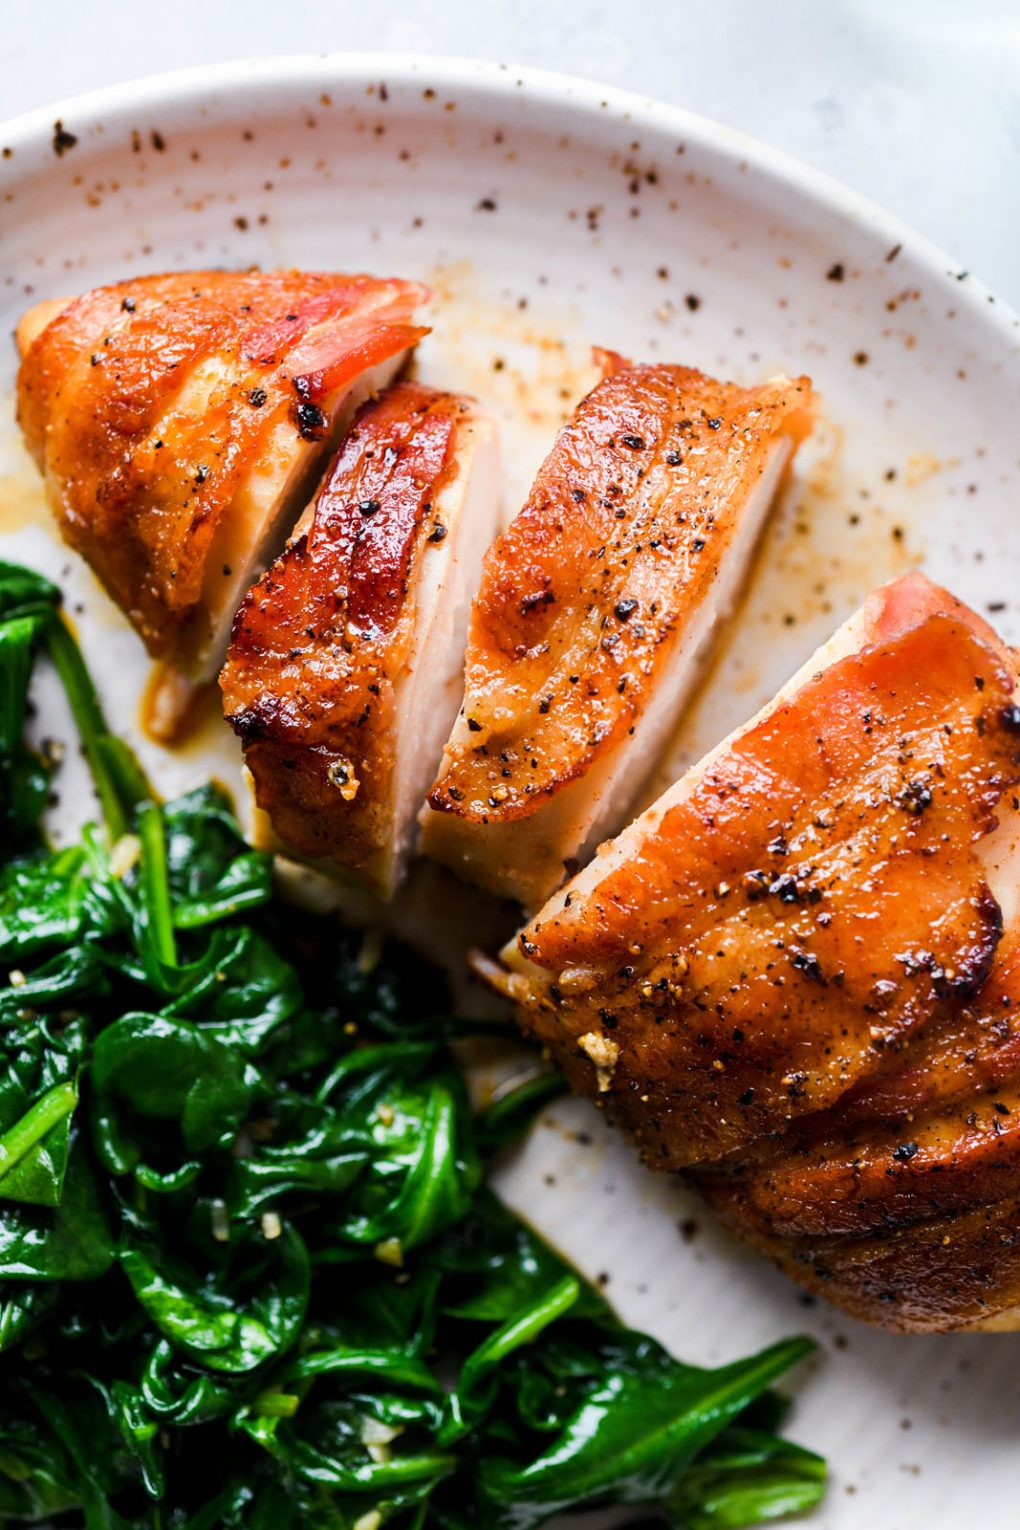 Close up image of a glistening bacon wrapped chicken breast cut into slices, on a white speckled plate next to some wilted garlic spinach.